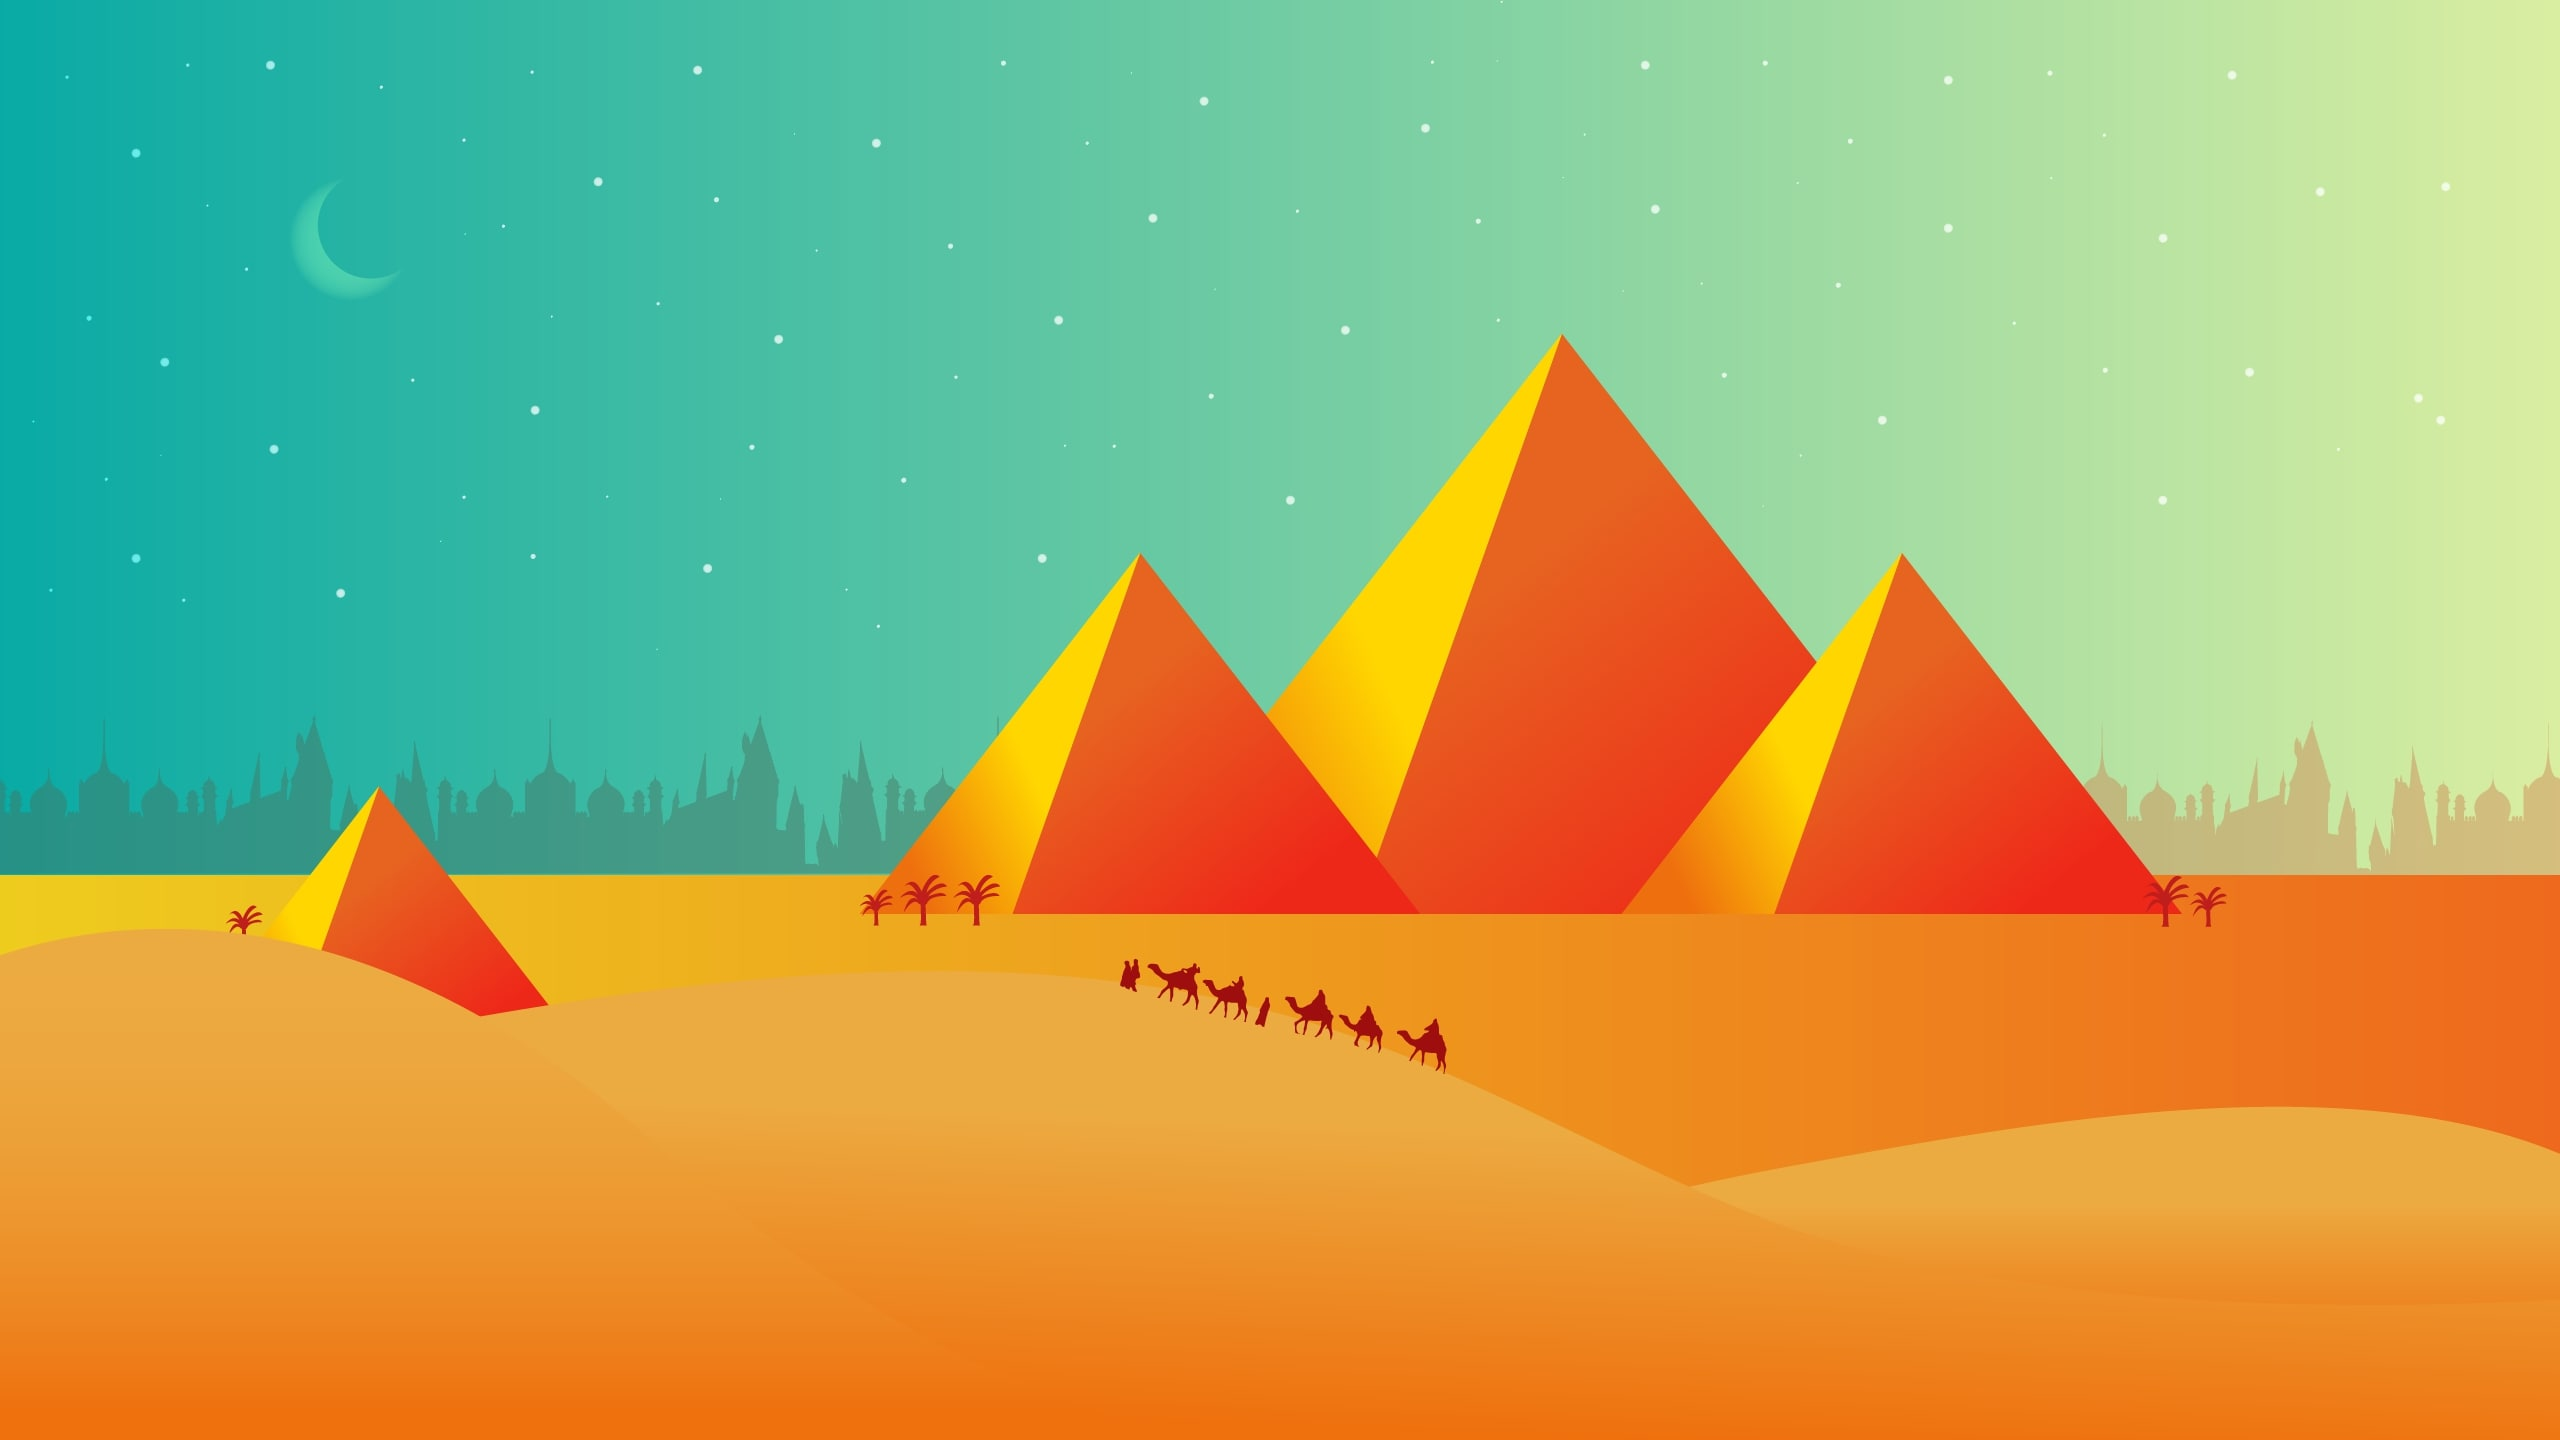 Pyramids Graphic Art